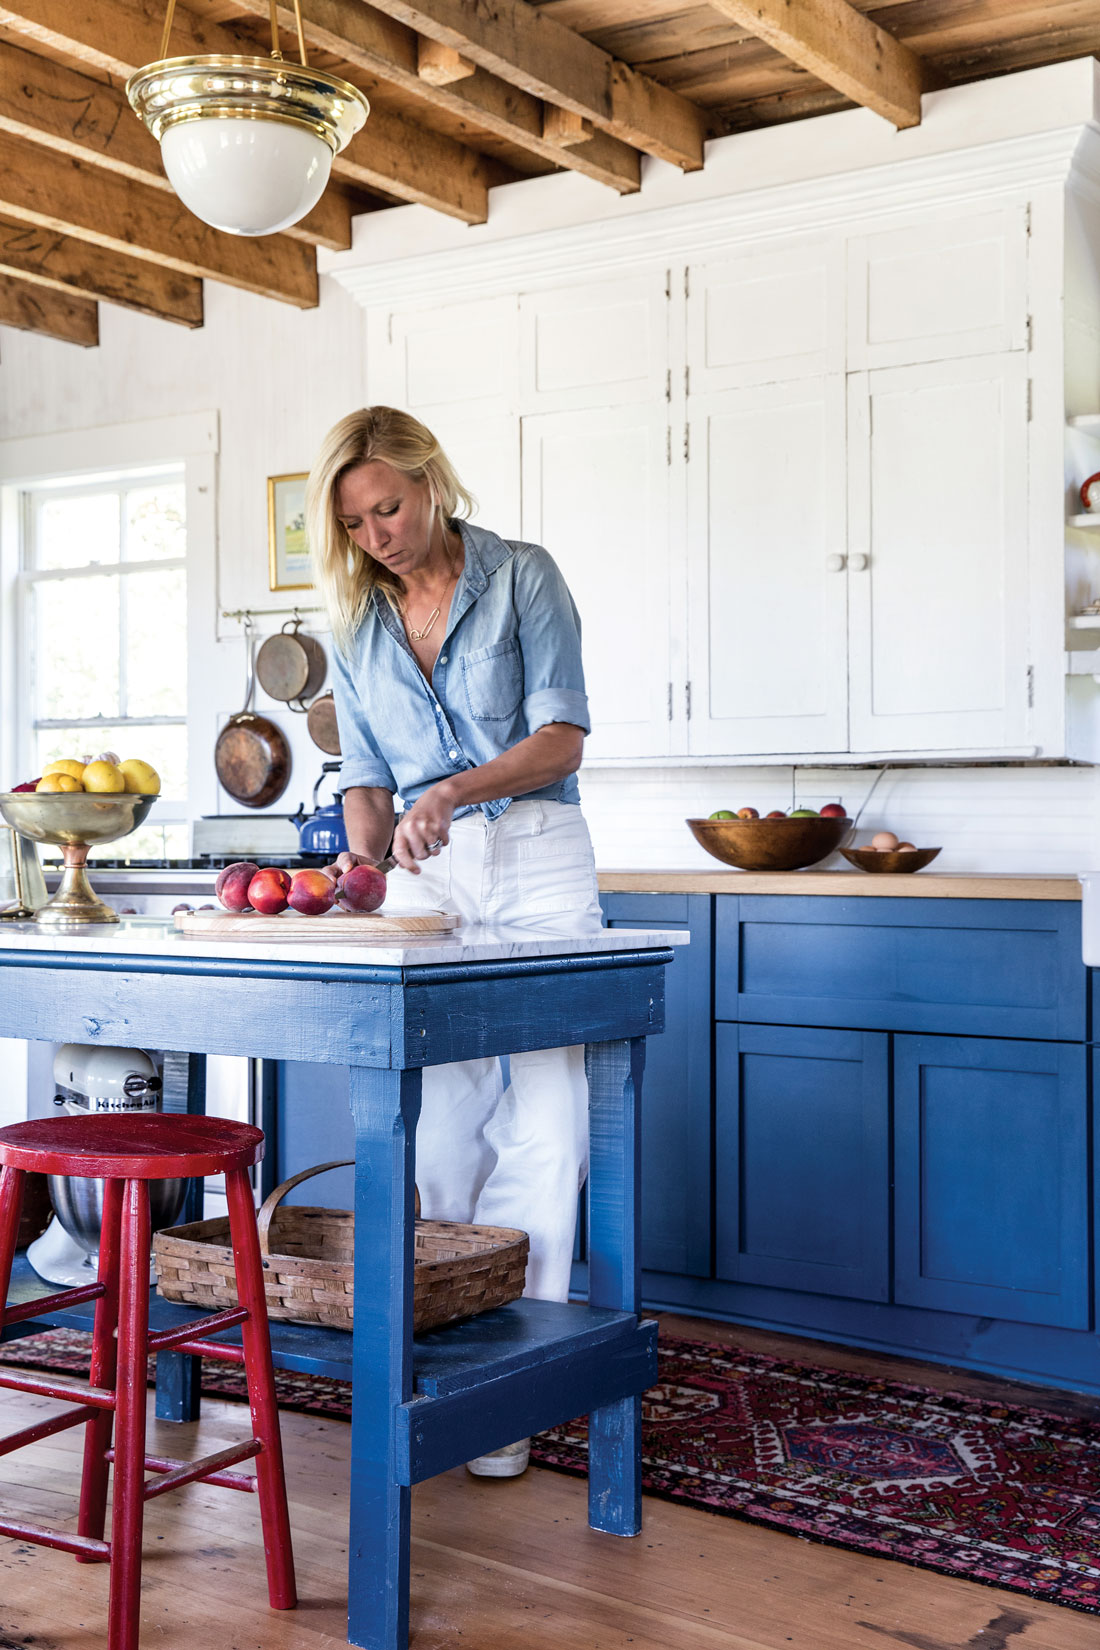 The Stonington kitchen Christina Salway and John Moskowitz rehabbed centers on an antique workbench topped with Carrara marble from Sedgwick's The Granite Shop. It's painted Benjamin Moore's Gentleman's Gray like the Ikea lower cabinets; Chantilly Lace, also by Benjamin Moore, brightens the original uppers